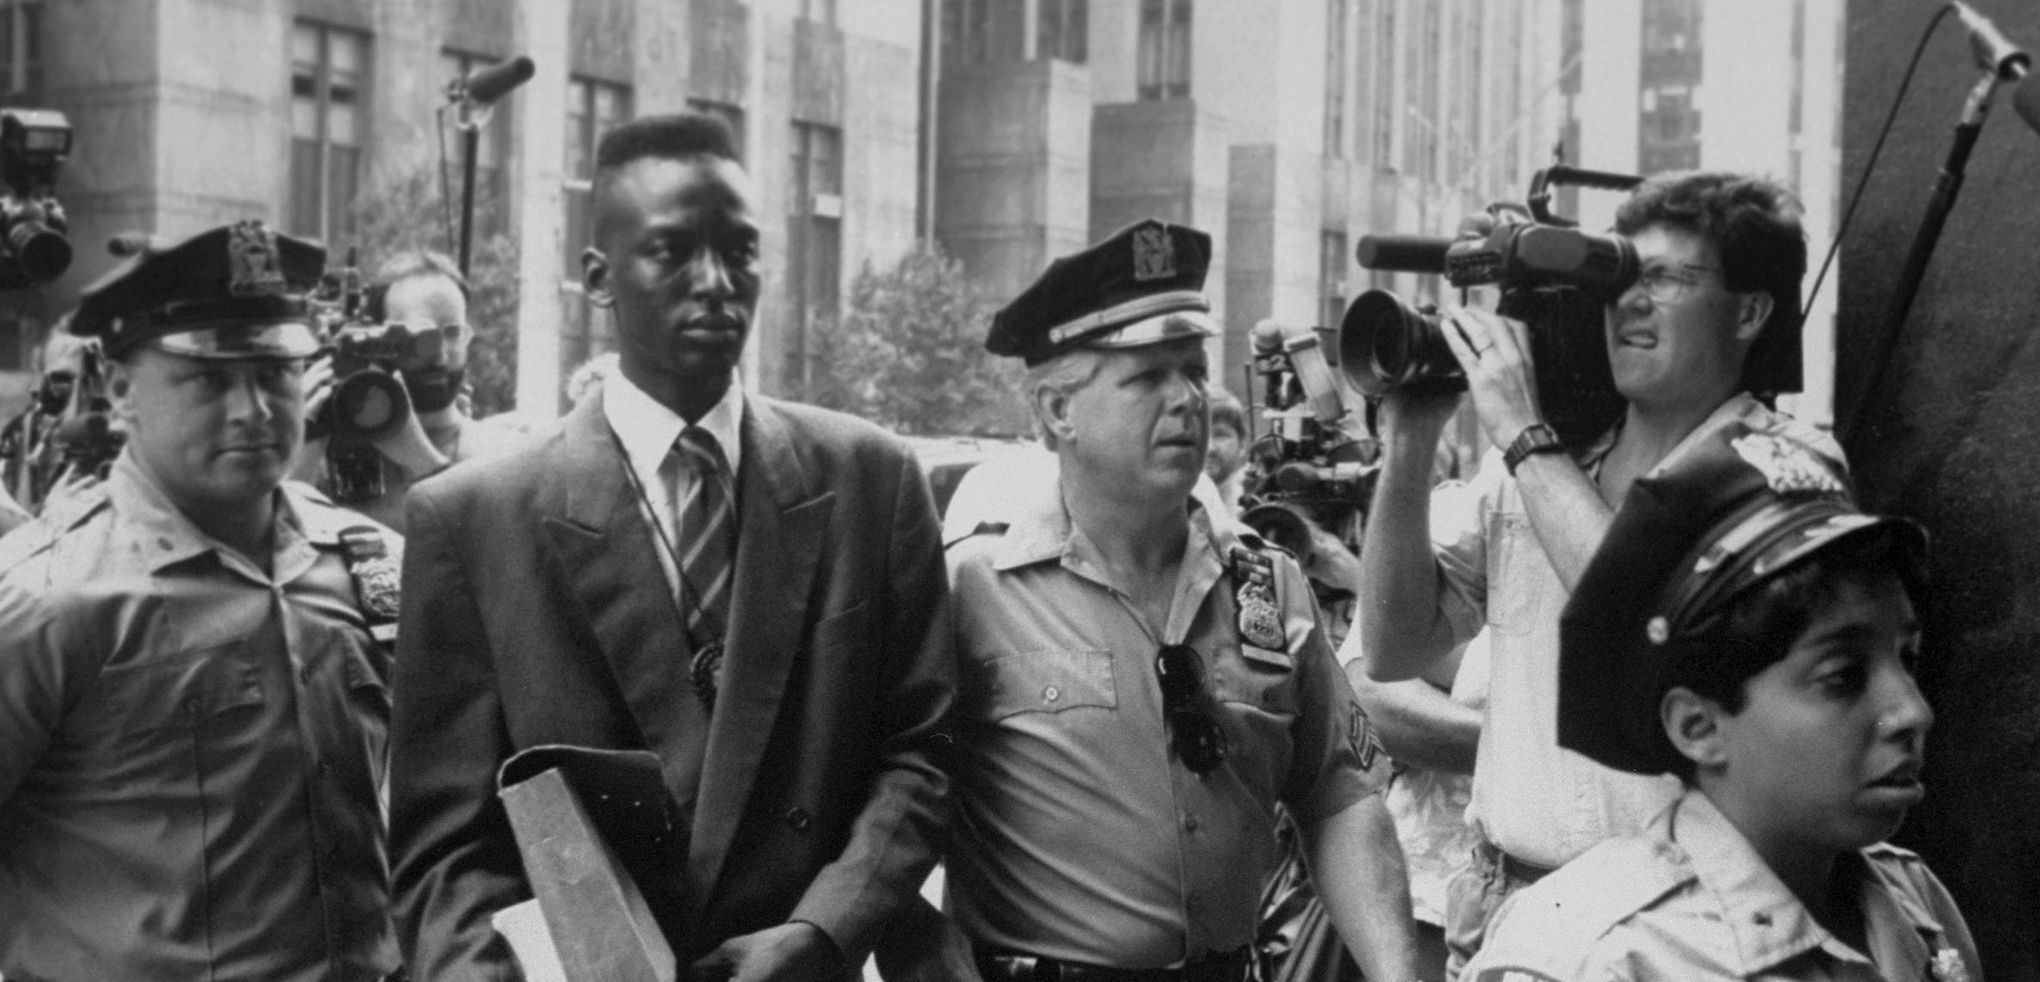 An image from The Central Park Five